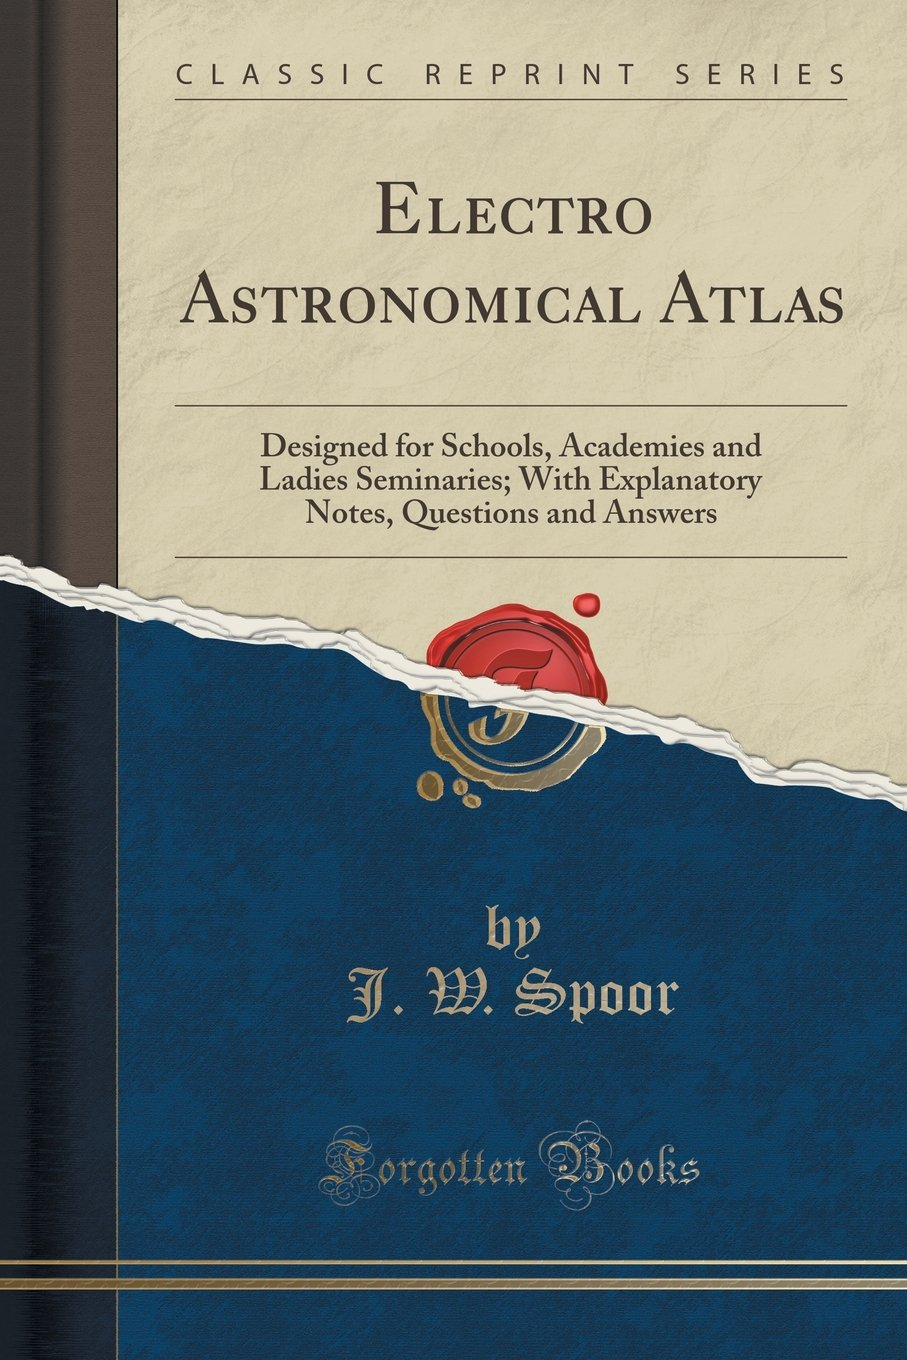 Download Electro Astronomical Atlas: Designed for Schools, Academies and Ladies Seminaries; With Explanatory Notes, Questions and Answers (Classic Reprint) PDF